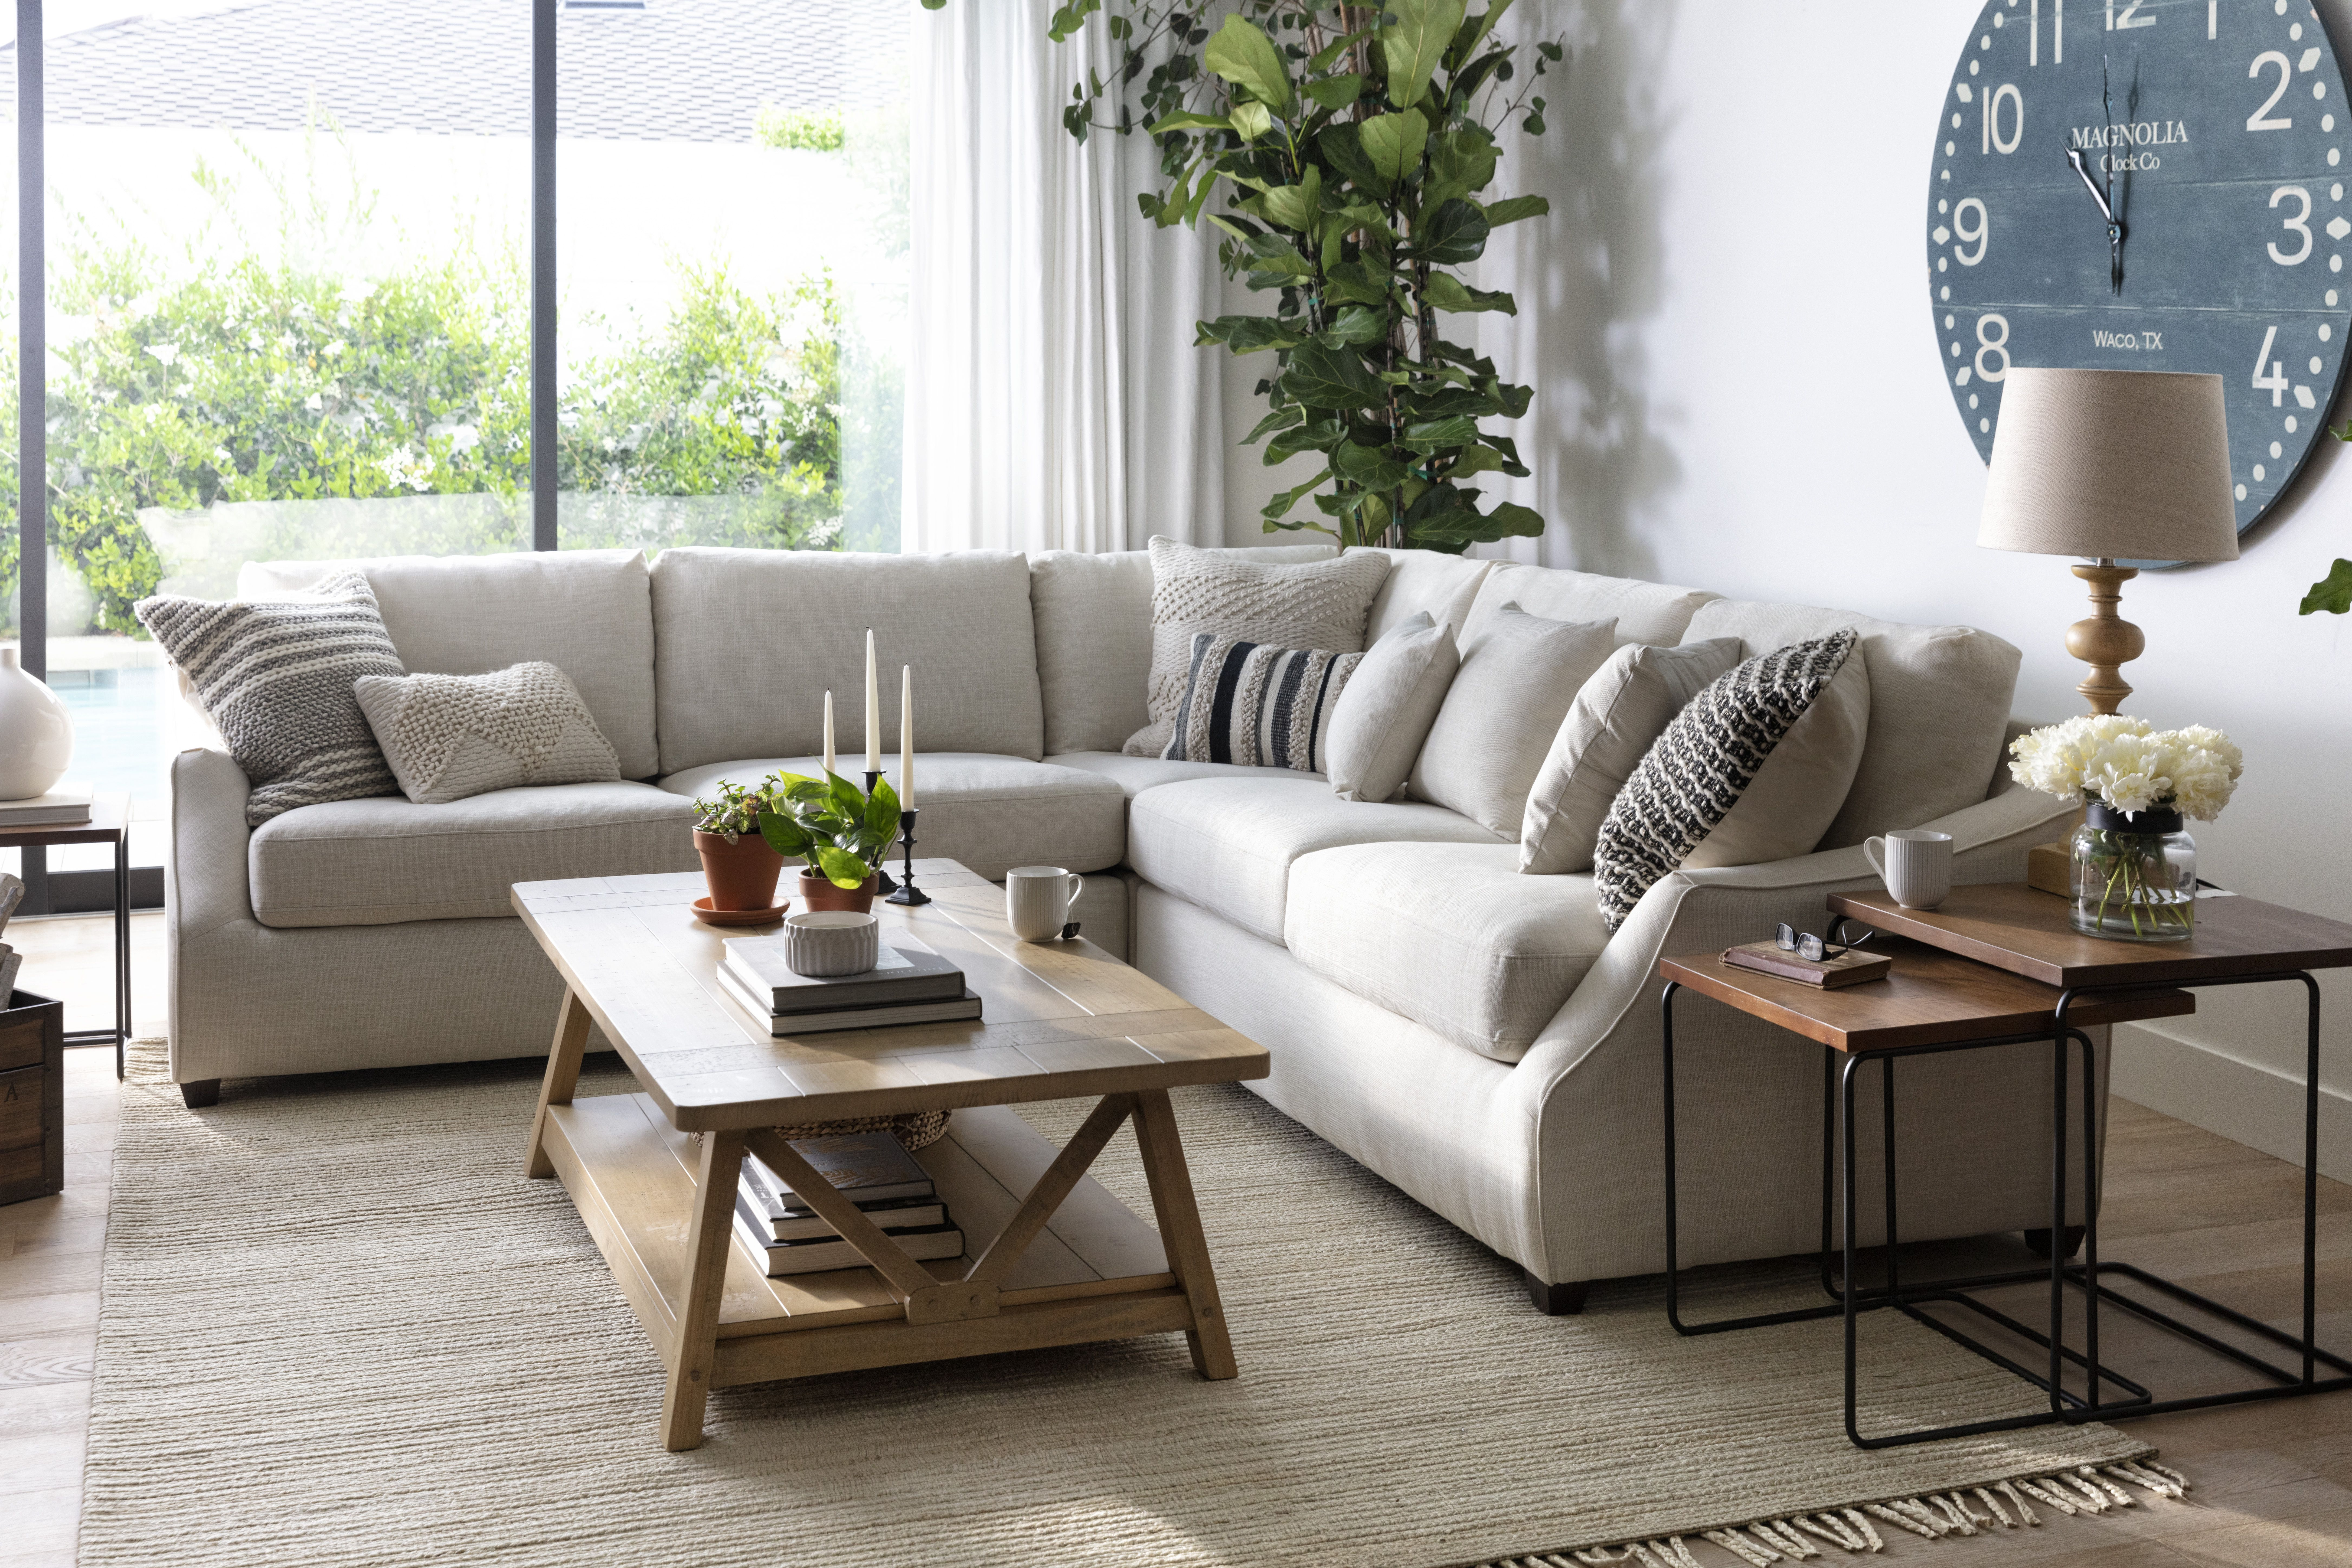 Magnolia Home Collection By Joanna Gaines Joanna Gaines Living Room Farm House Living Room Magnolia Homes Living room ideas magnolia